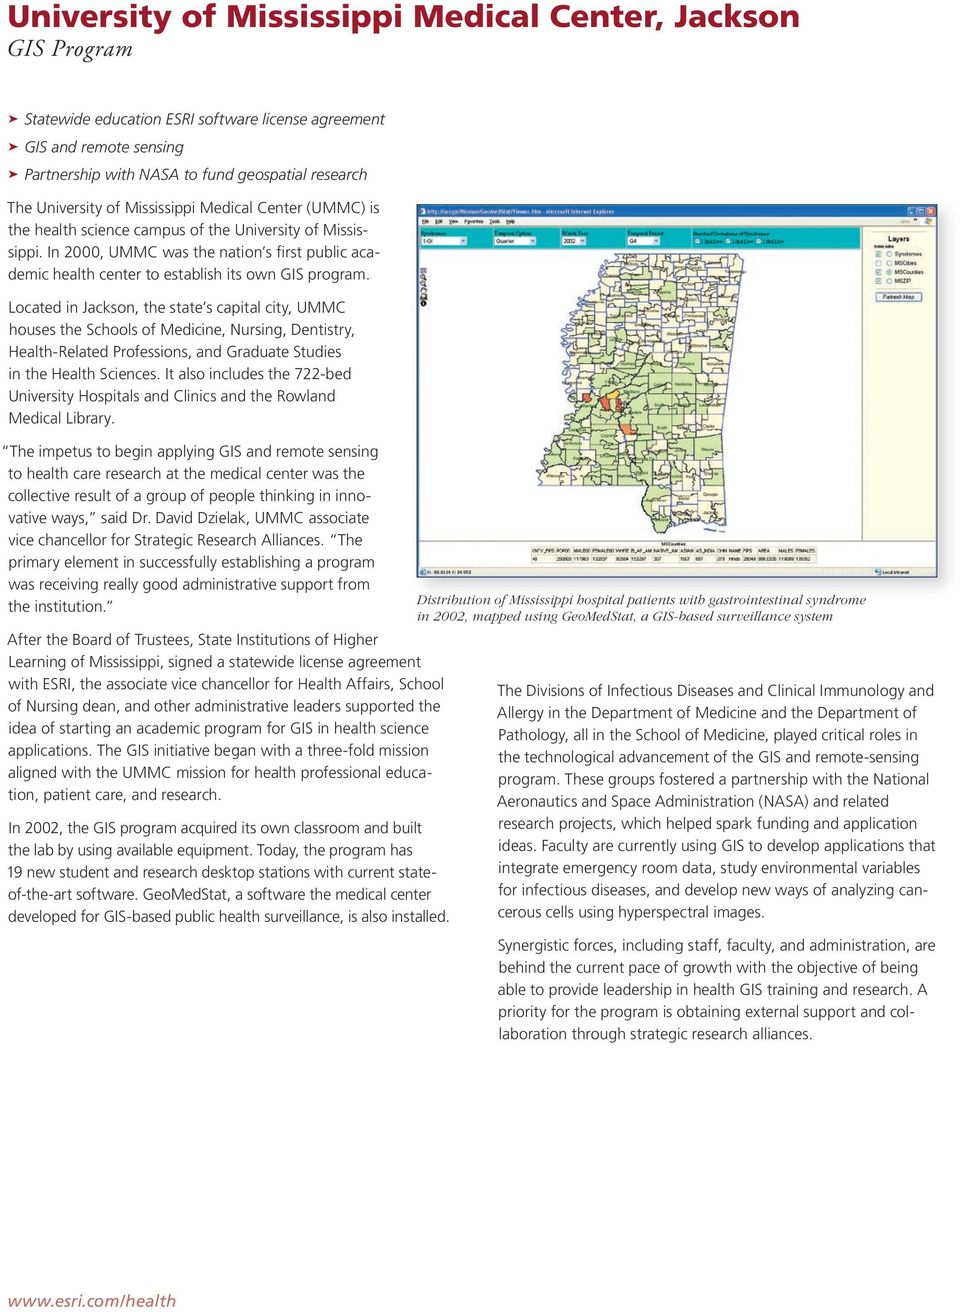 In 2000, UMMC was the nation s first public academic health center to establish its own GIS program.